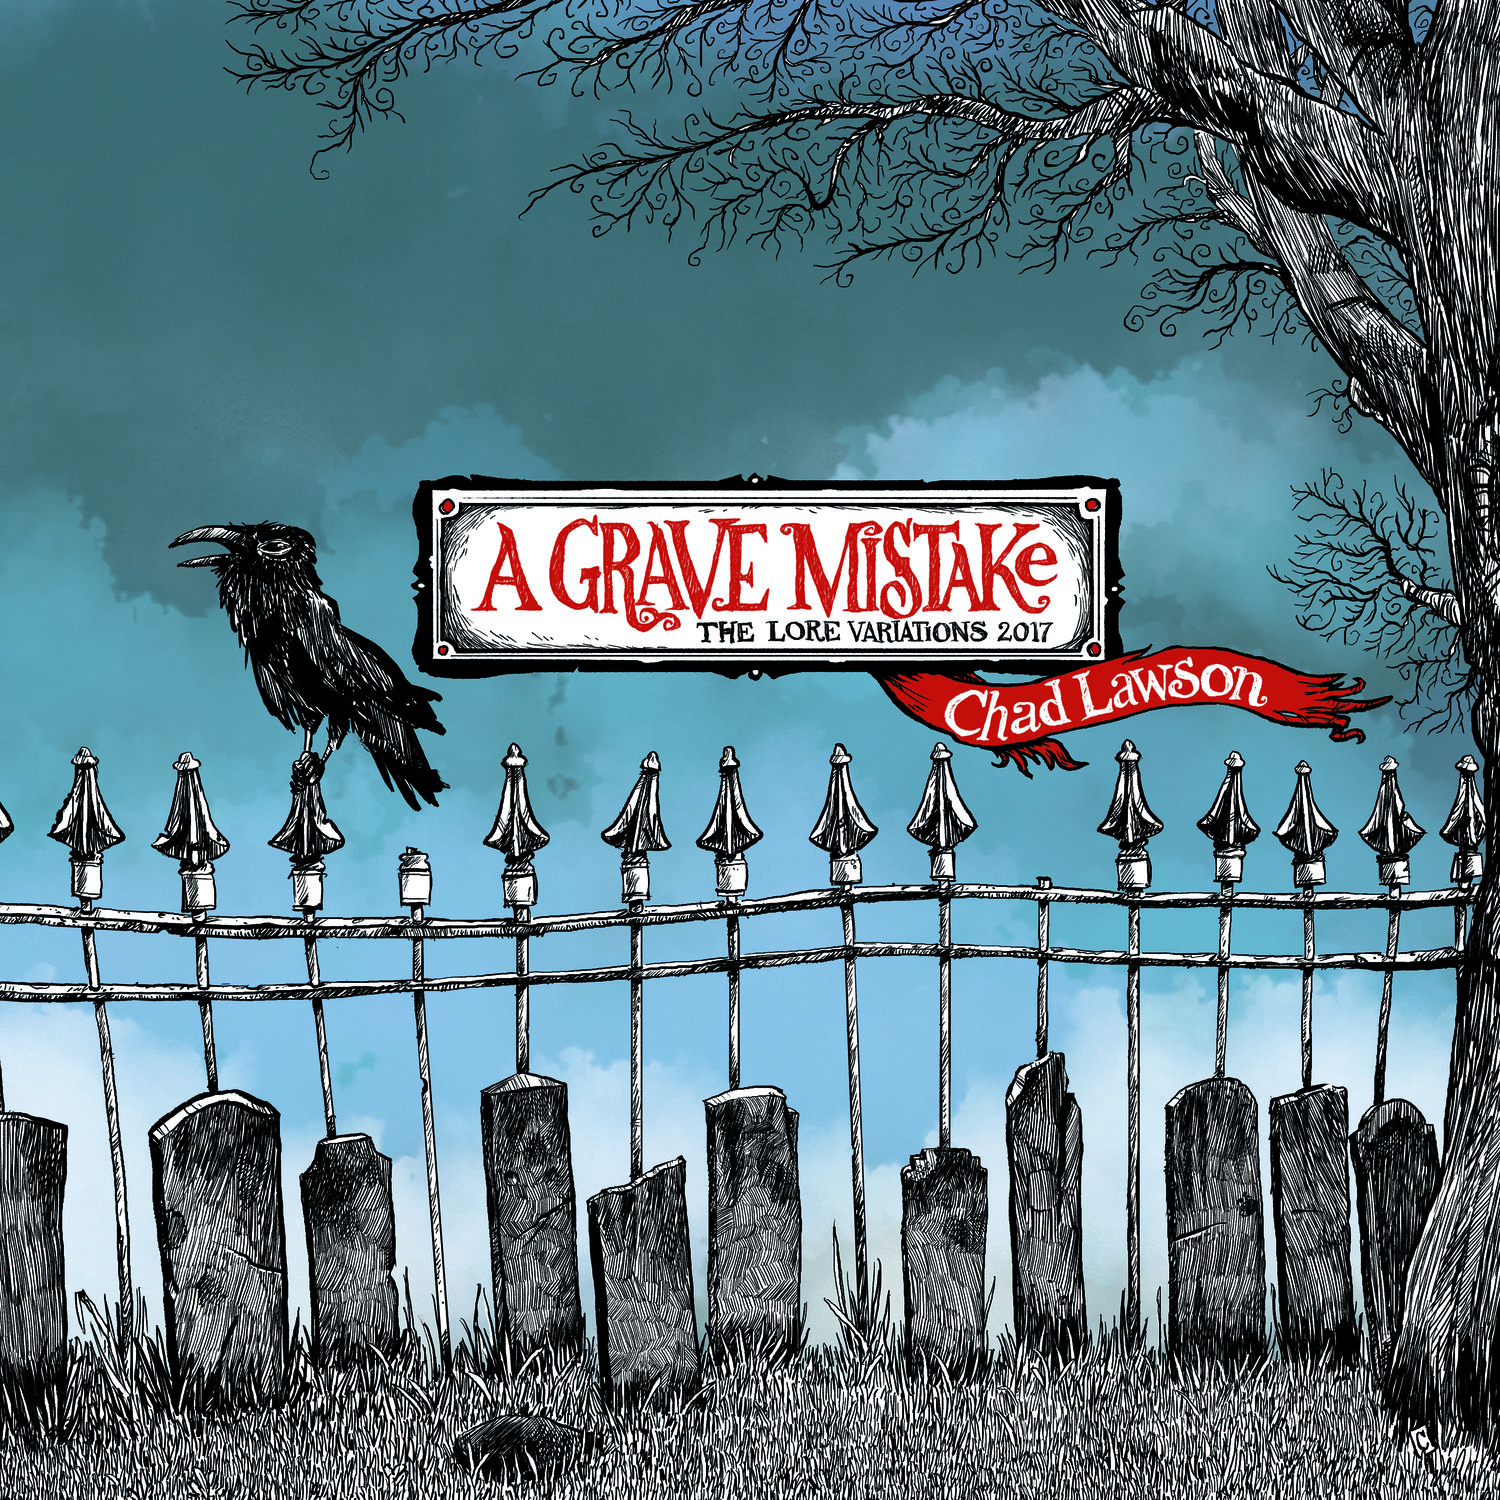 Chad Lawson - A Grave Mistake: The Lore Variations  Release Date: October 20, 2017 Label: Hillset Records  SERVICE: Mastering NUMBER OF DISCS: 1 GENRE: Classical FORMAT: CD